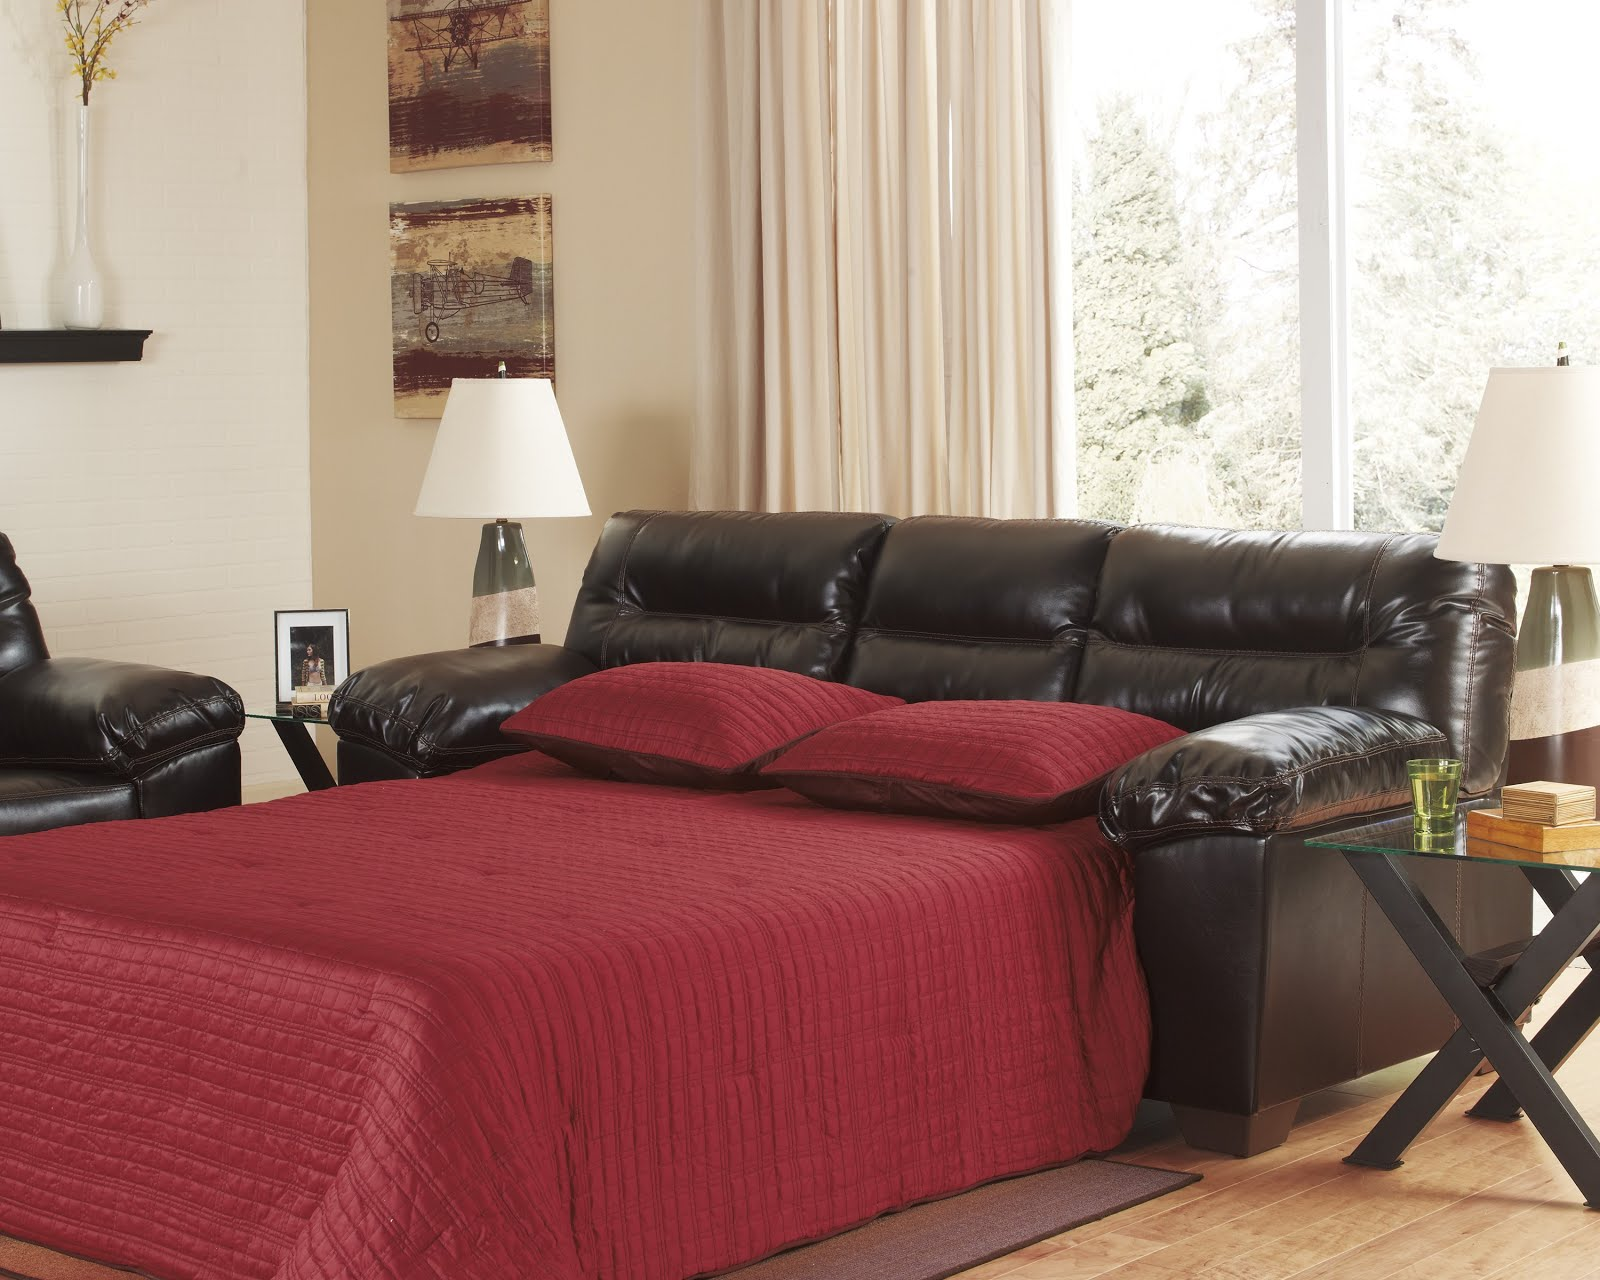 Simple Review About Living Room Furniture: Sleeper Sofas For Small ...